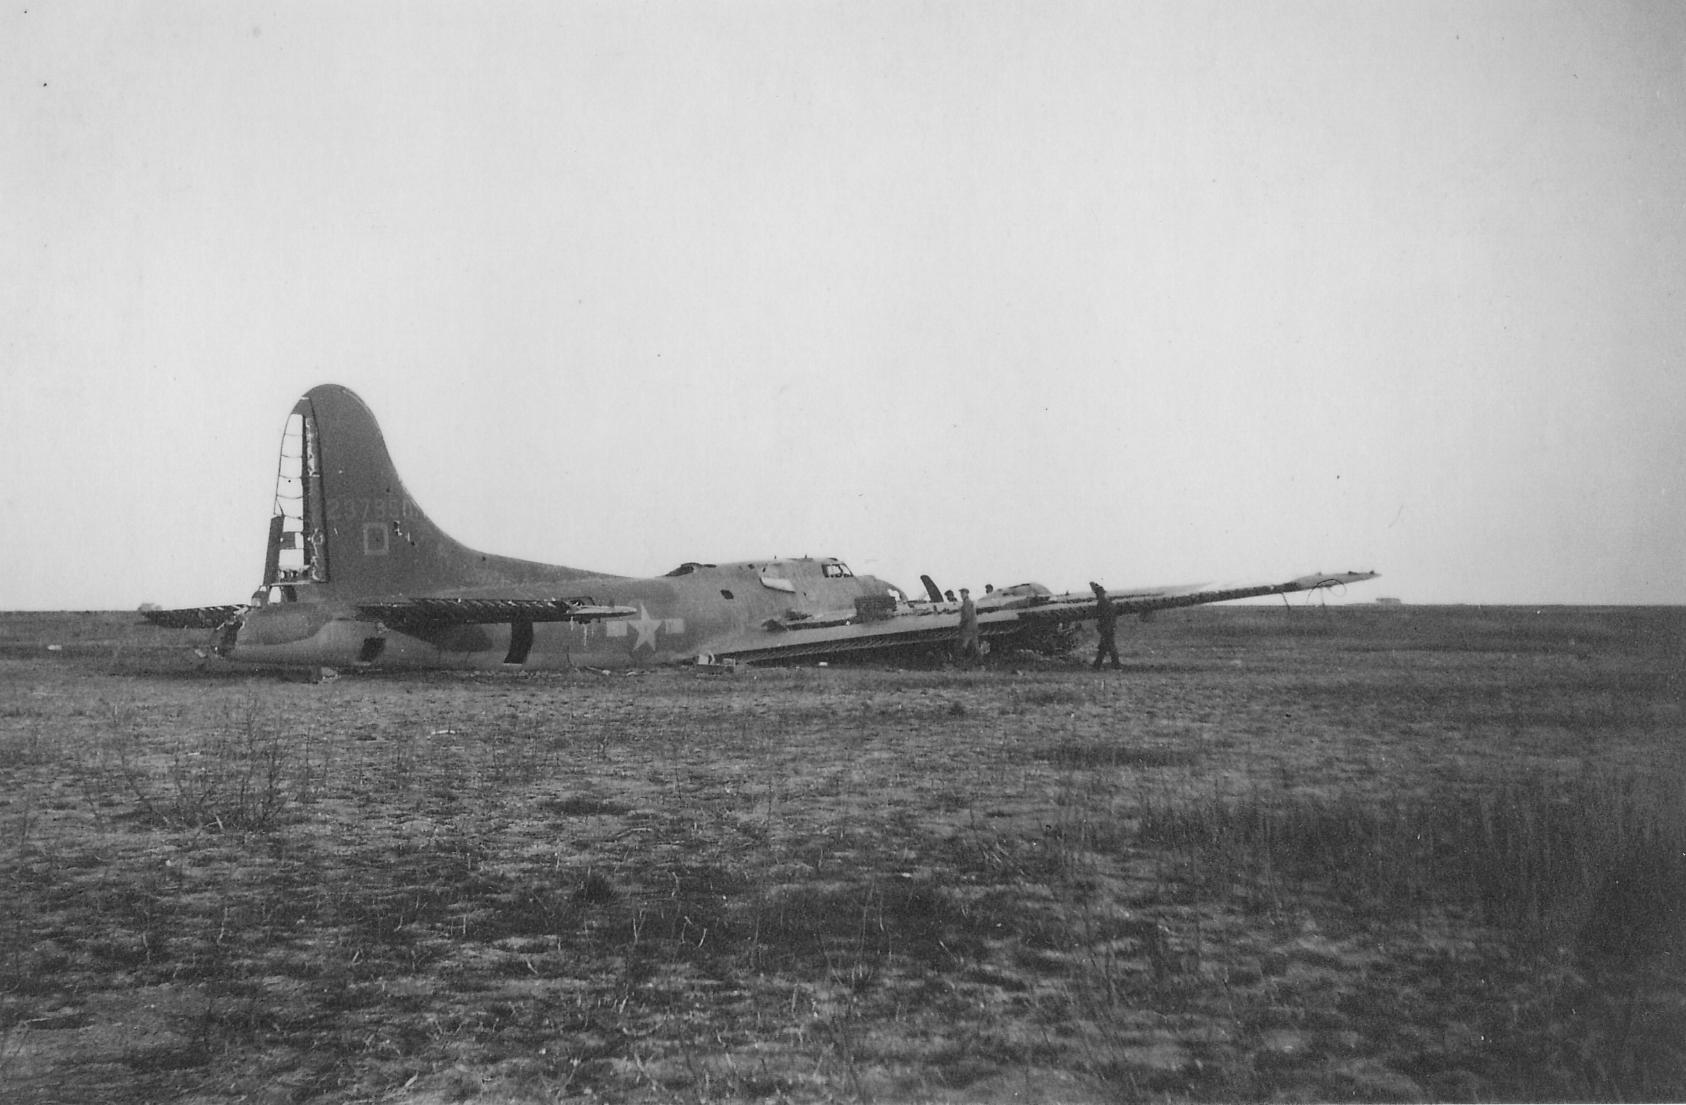 B17-Noordwest-van-haven-Schokland-1944